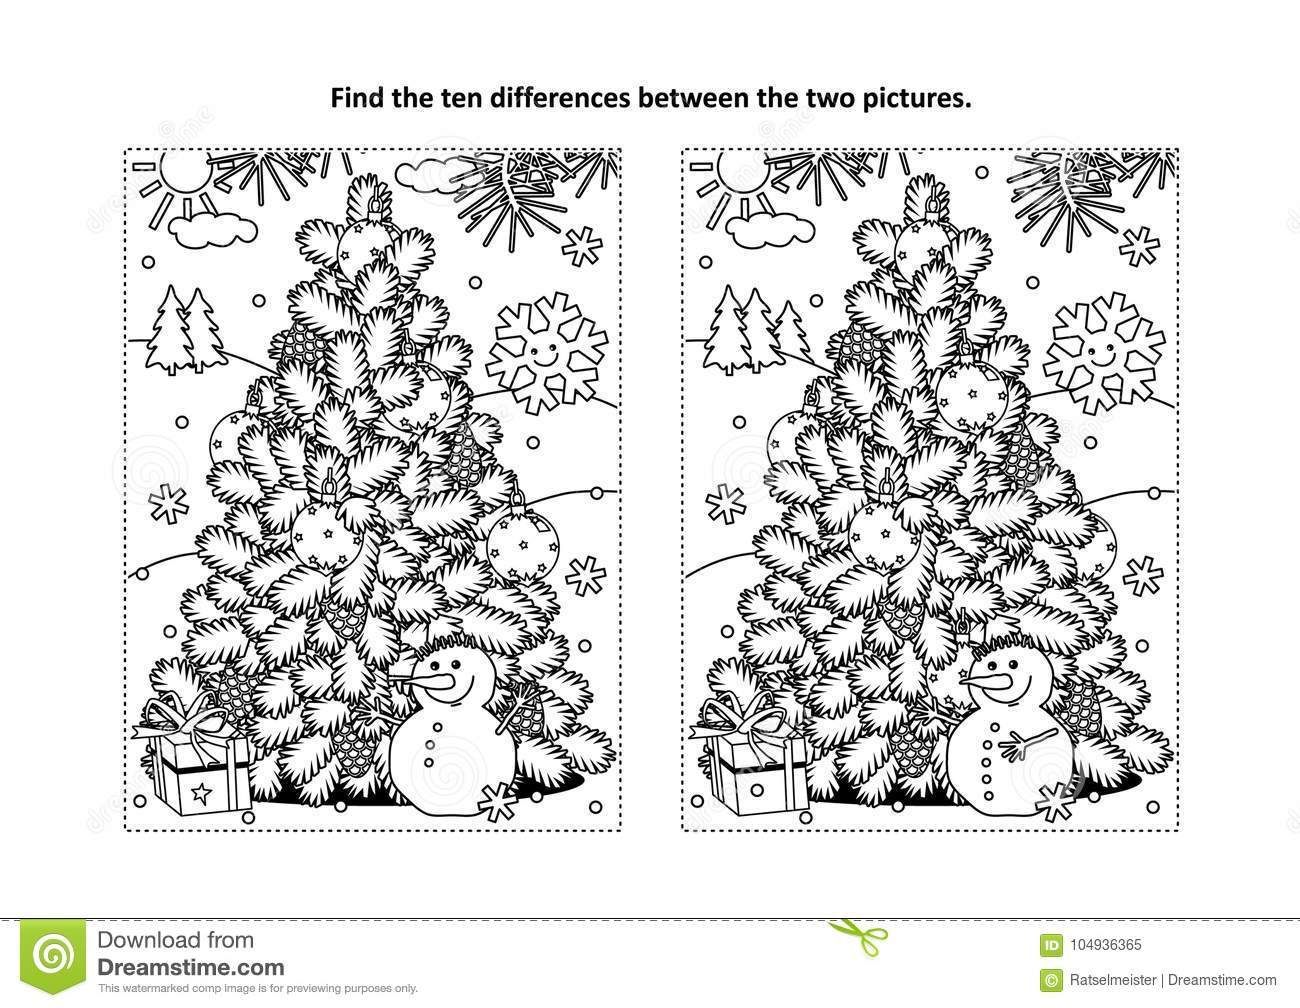 Winter Holidays New Year Or Christmas Themed Find The Ten Differences Picture Puzzle And Coloring Page With Tree Cheerful Snowman Gift Box